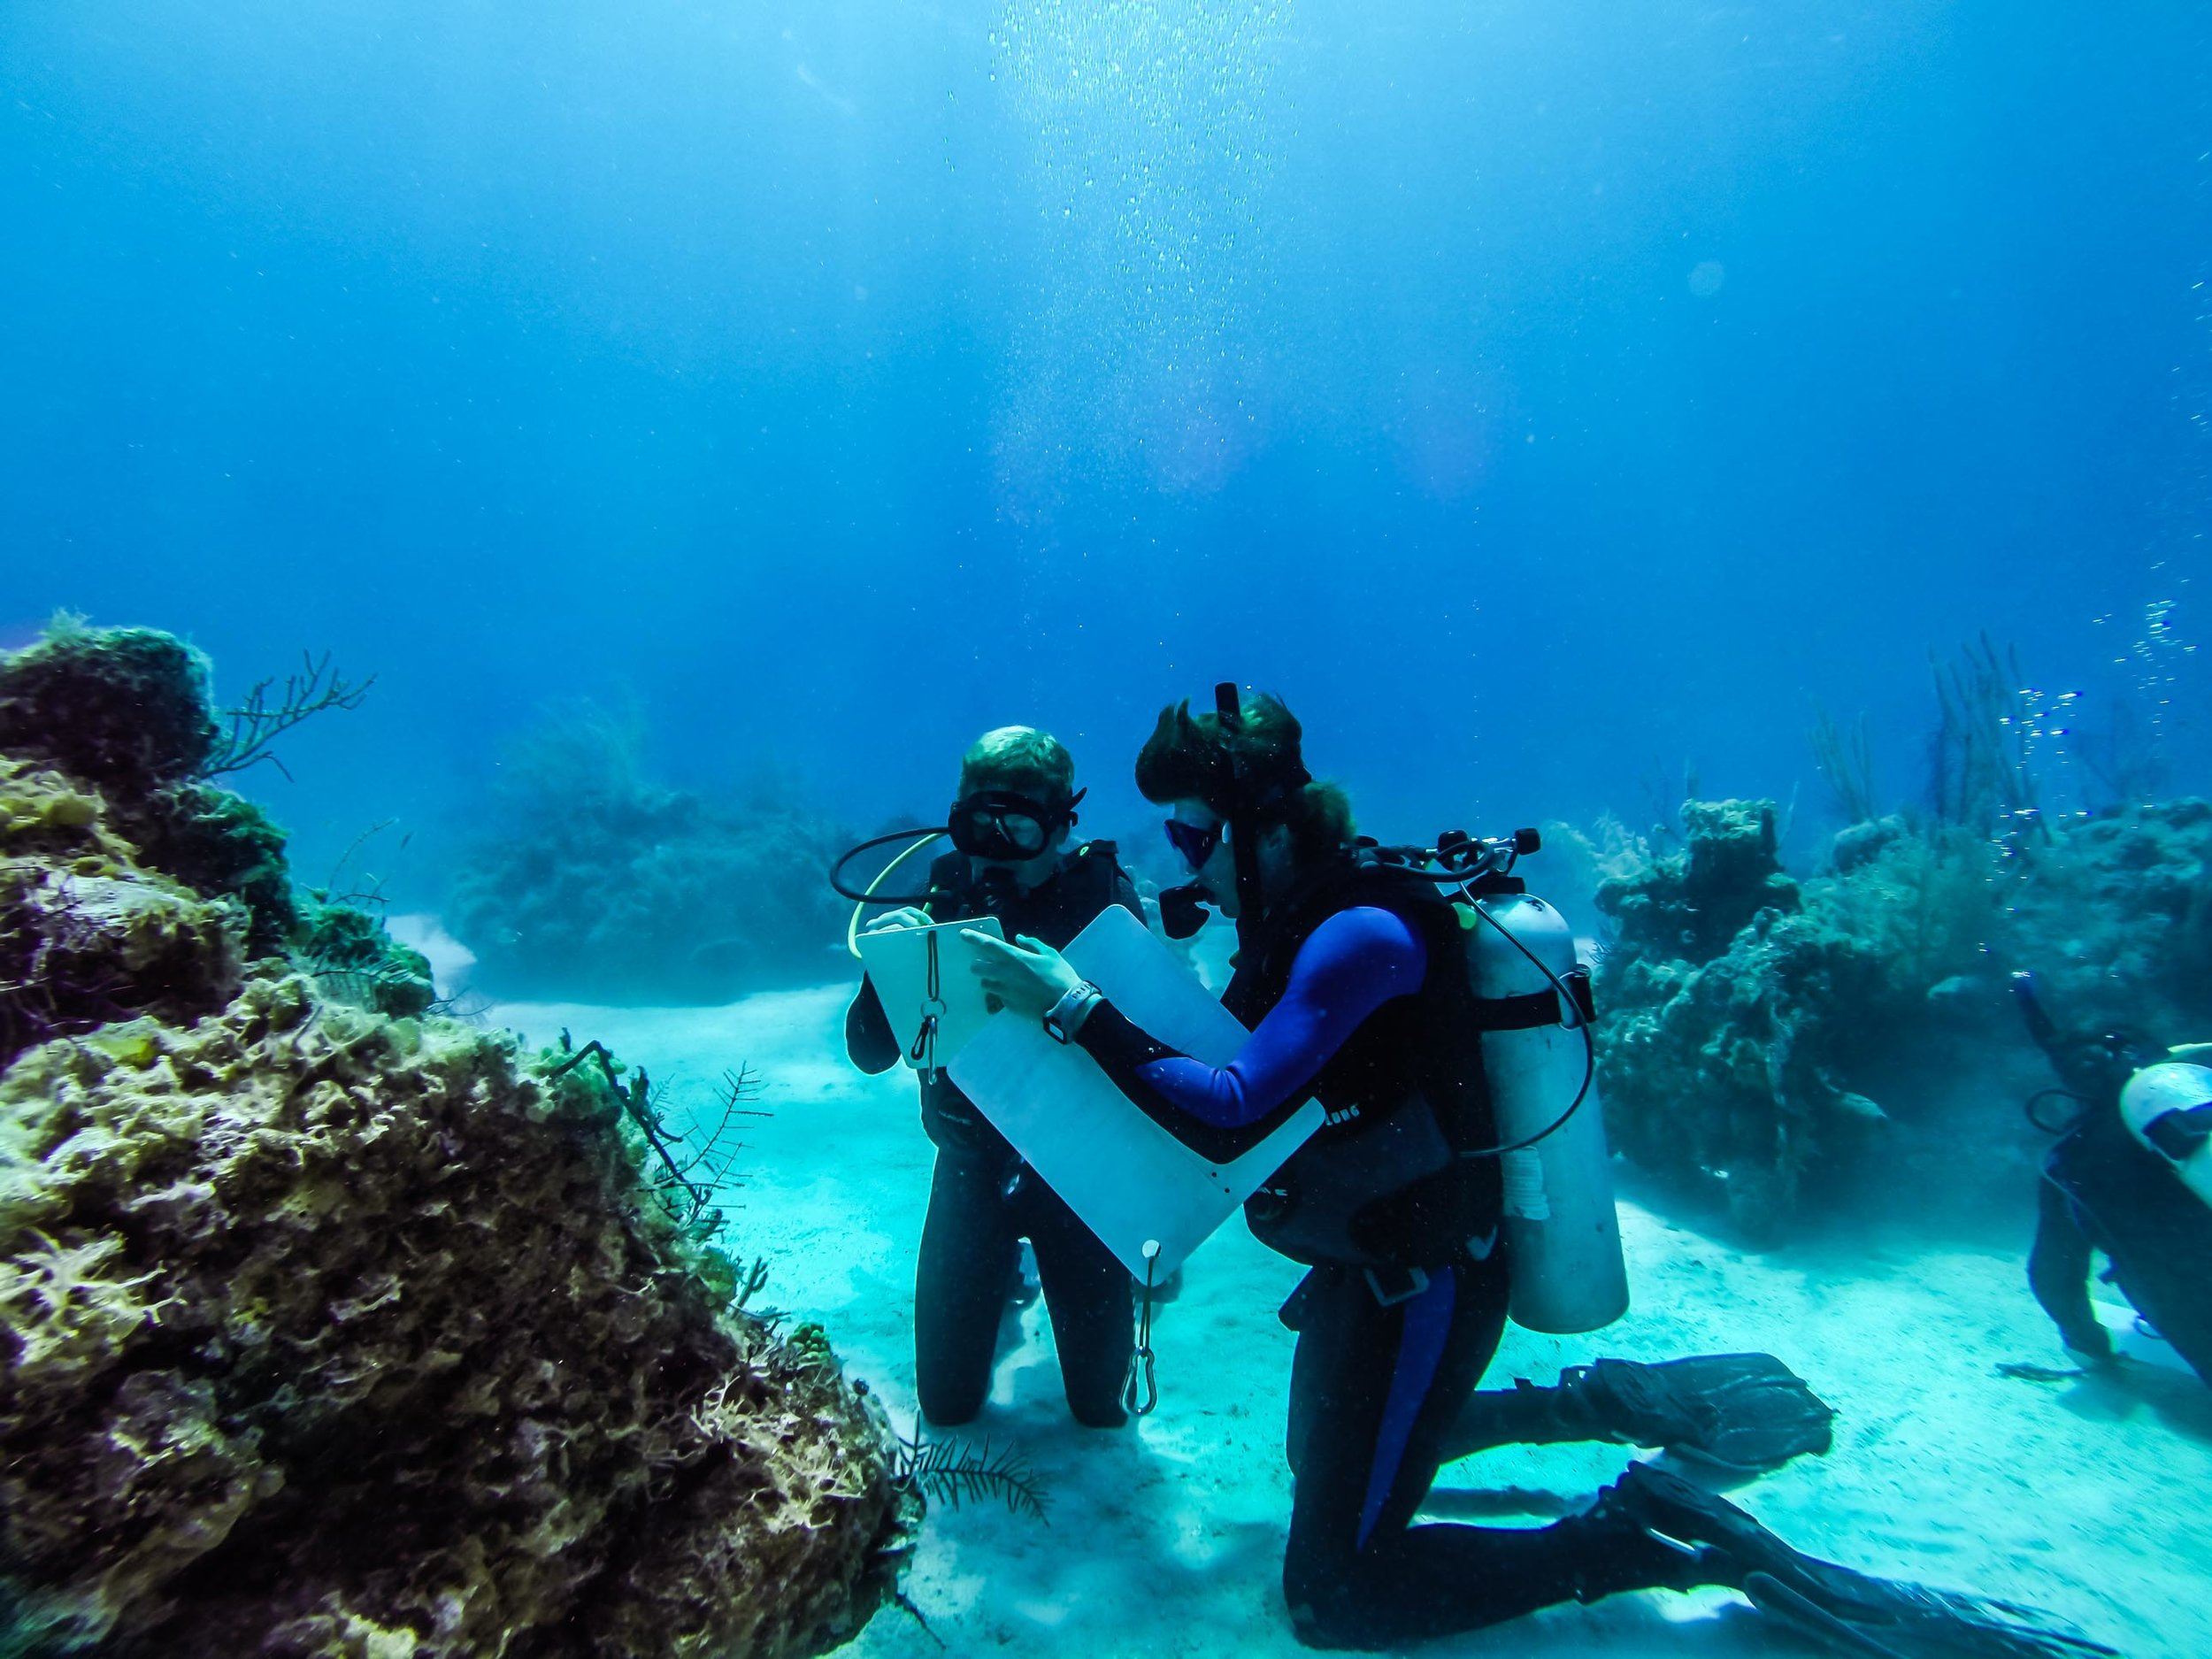 Hayden Stein and Nevin Ketchum recording notes during their dive at Tunnel Rock.